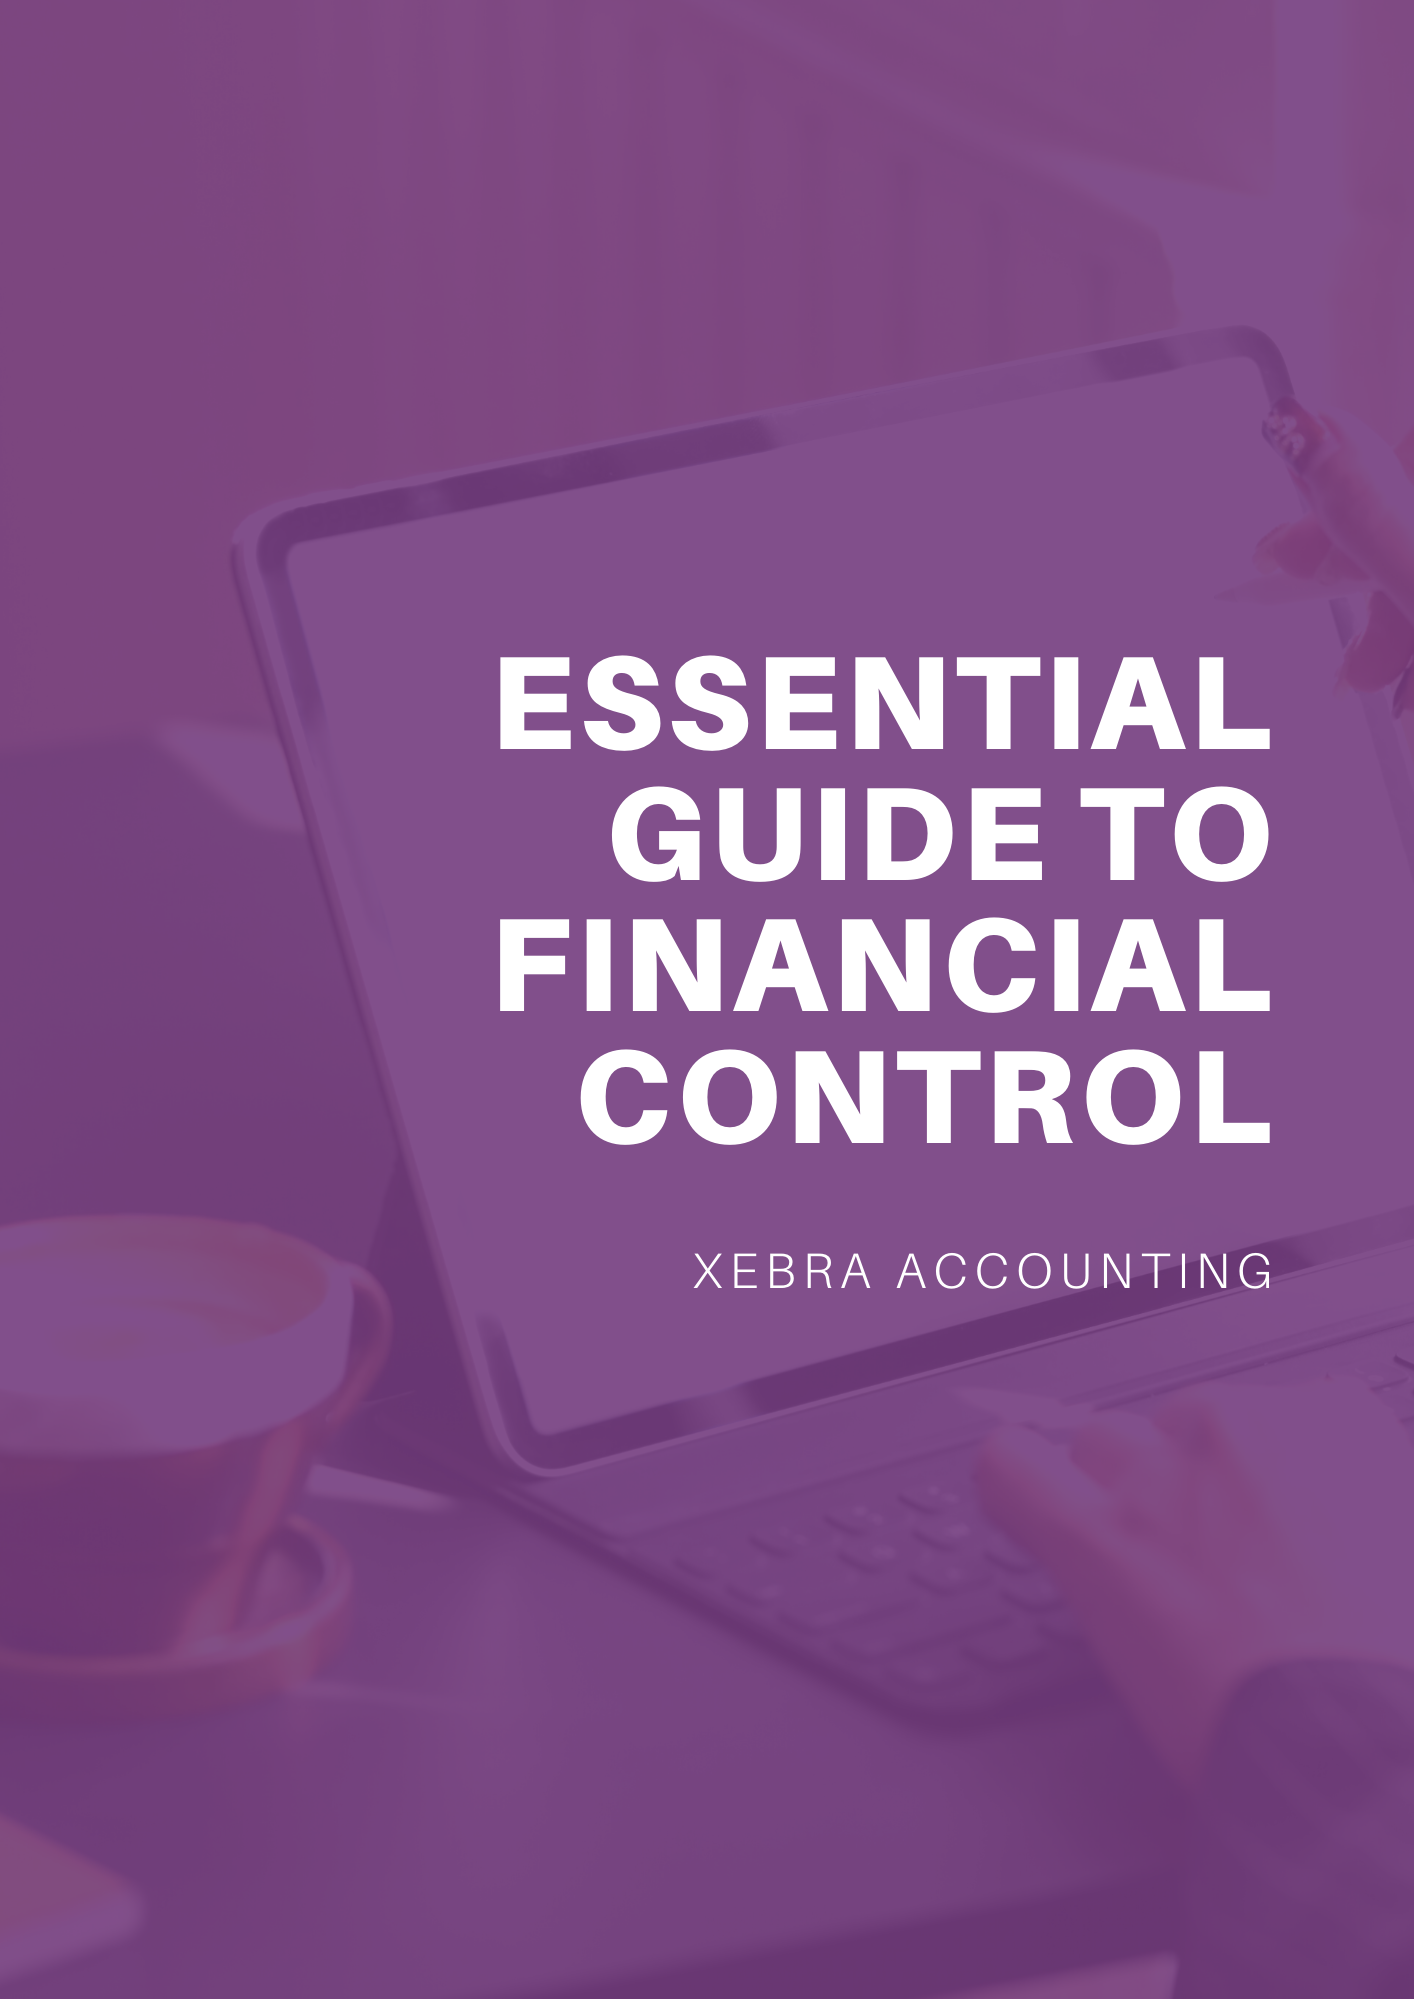 The Essential Guide to FInancial Control